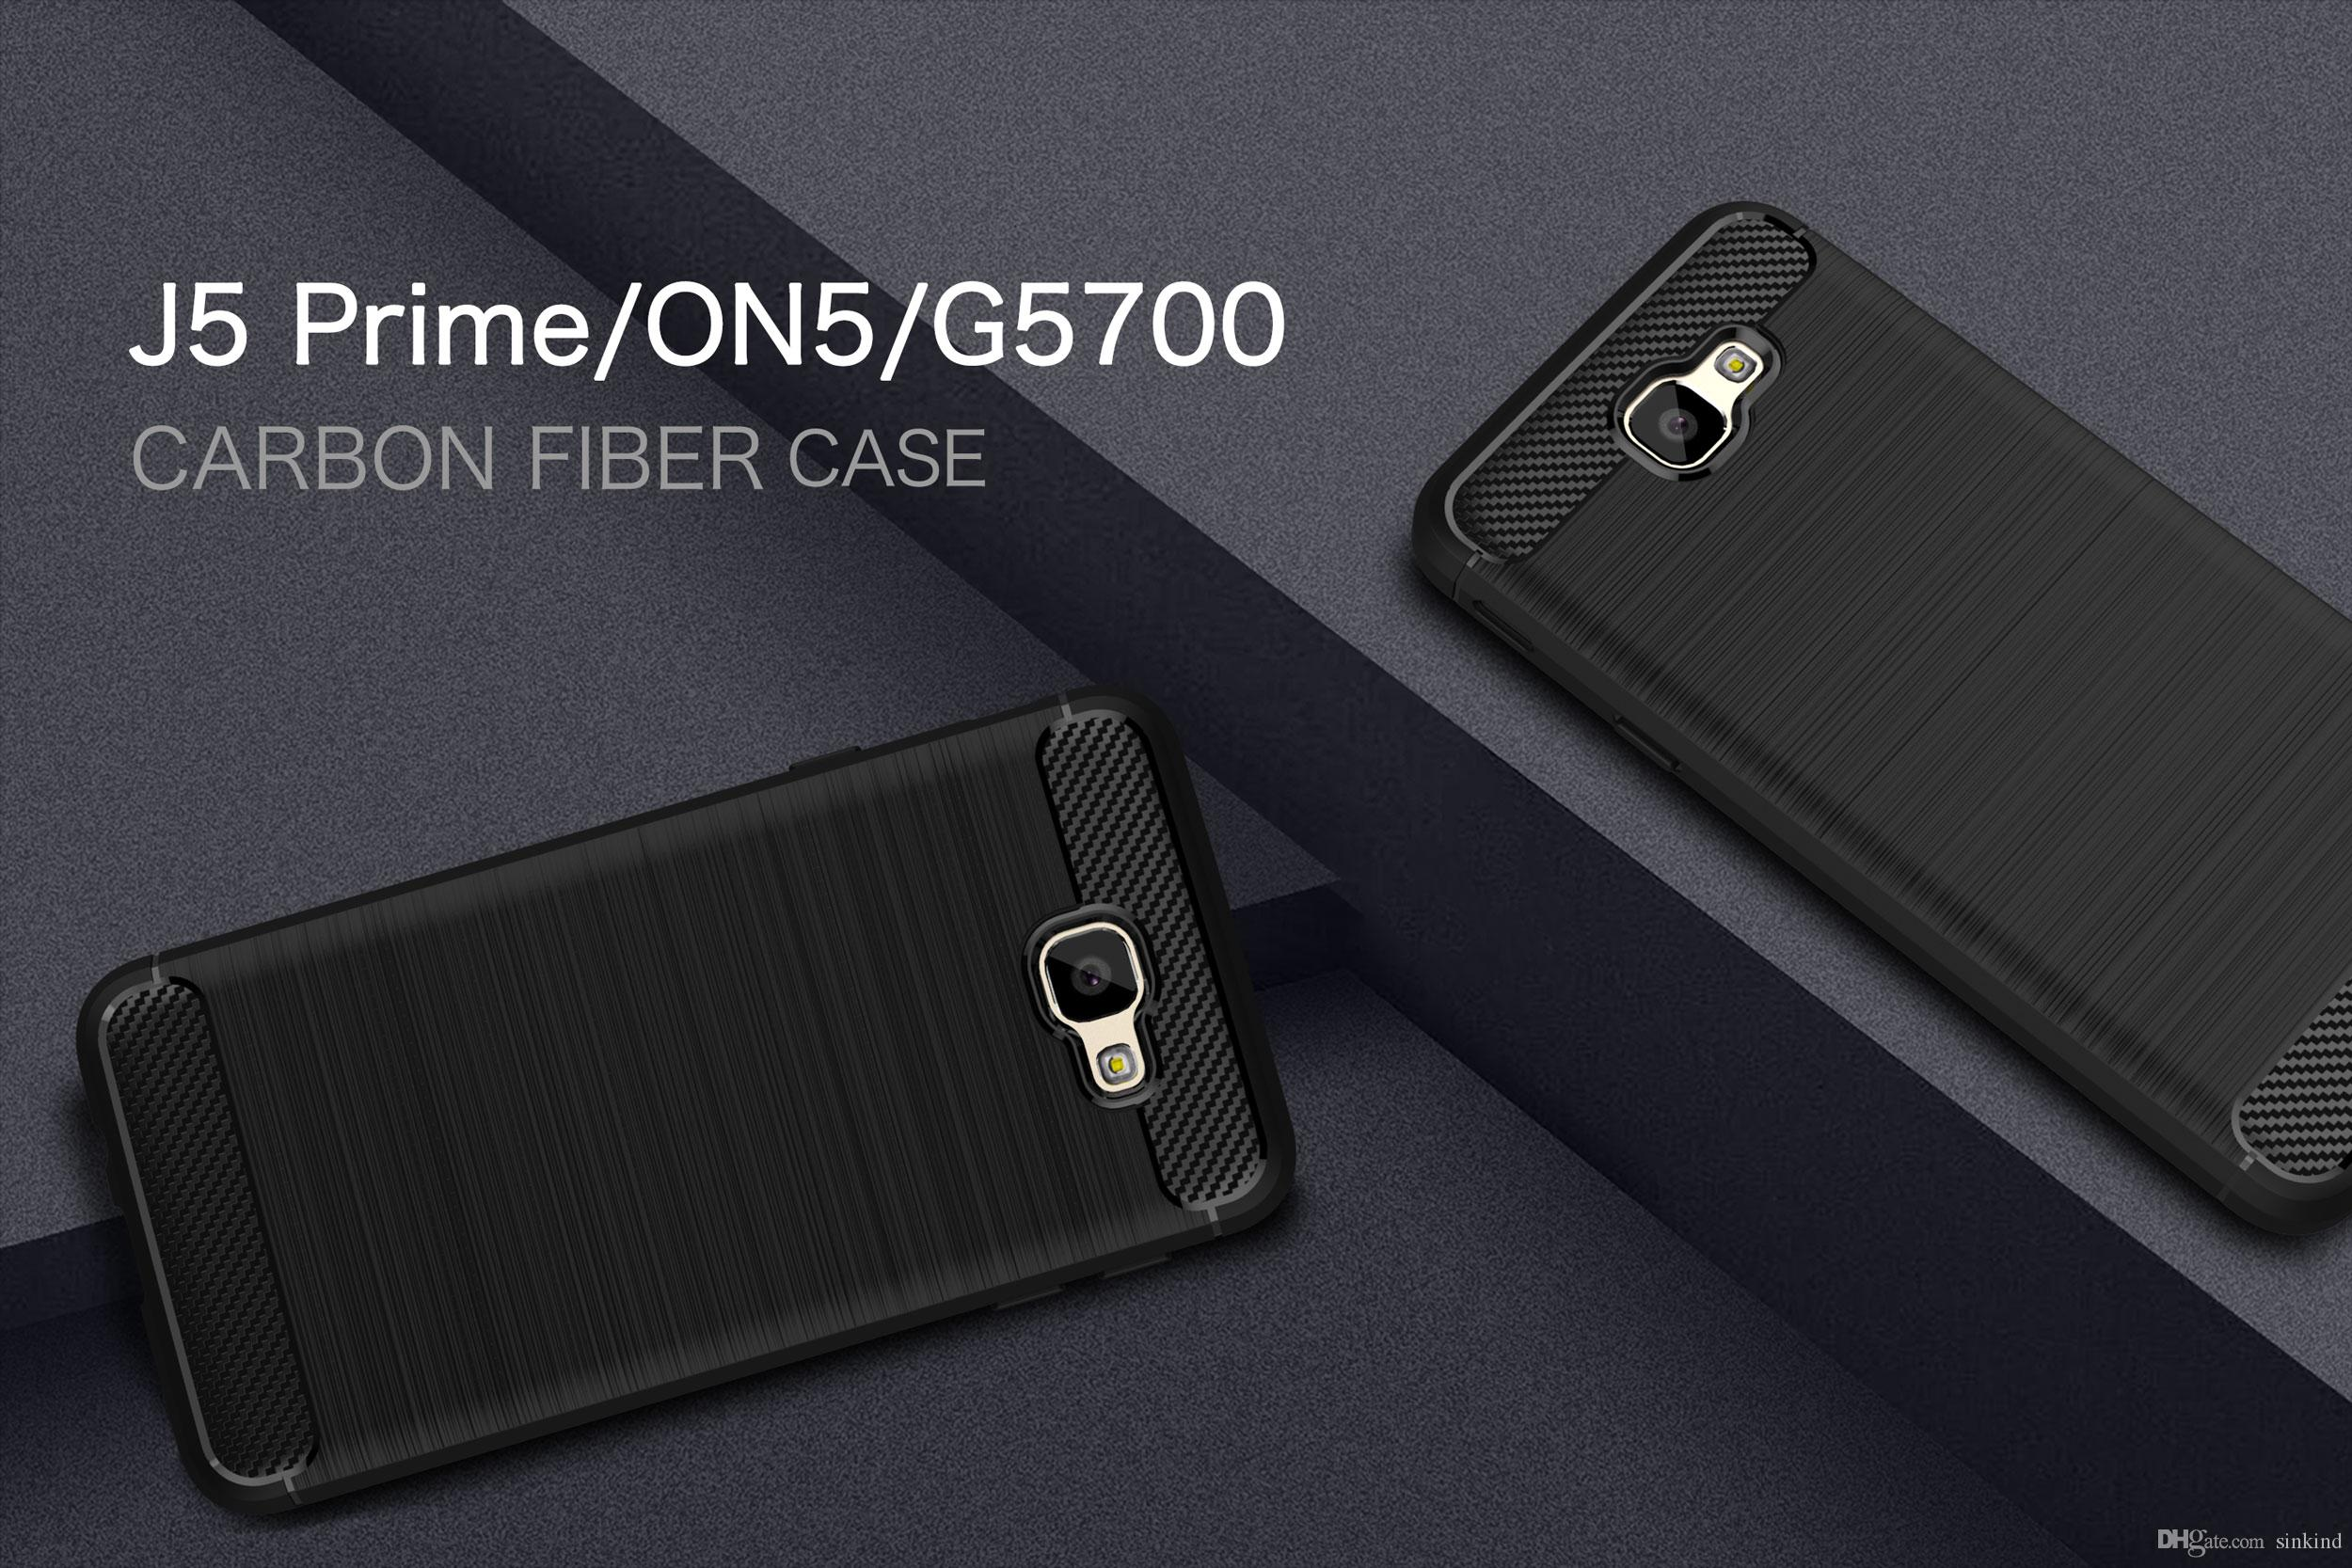 reputable site 9996b edd98 For Samsung Galaxy J5 prime / on5 Case Cover Shock-Proof Mobile Phone Bag  Carbon Fibre Brushed TPU Case for Galaxy J5prime G5700